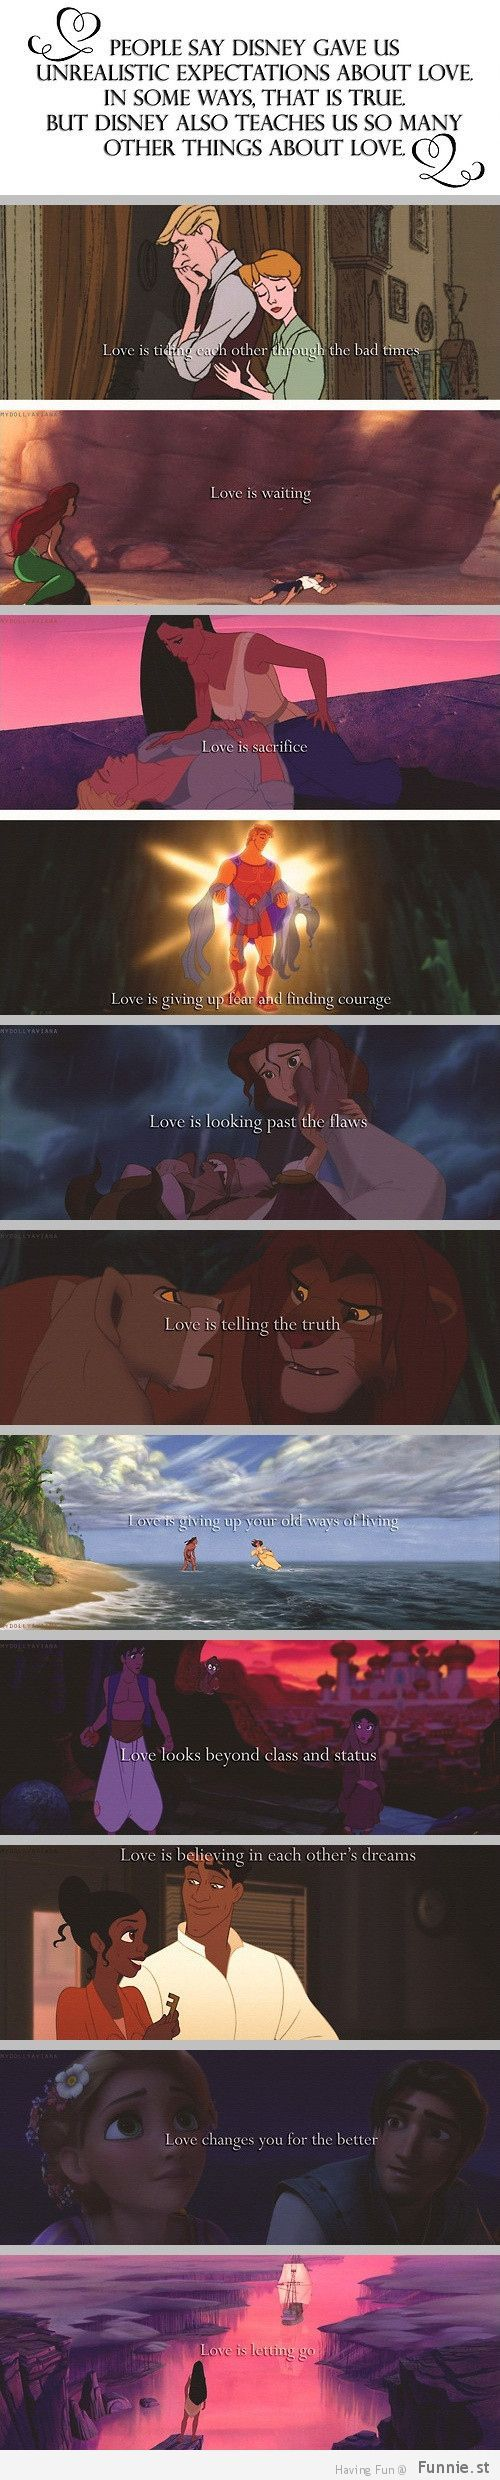 What Disney teaches us about love! so sweet!